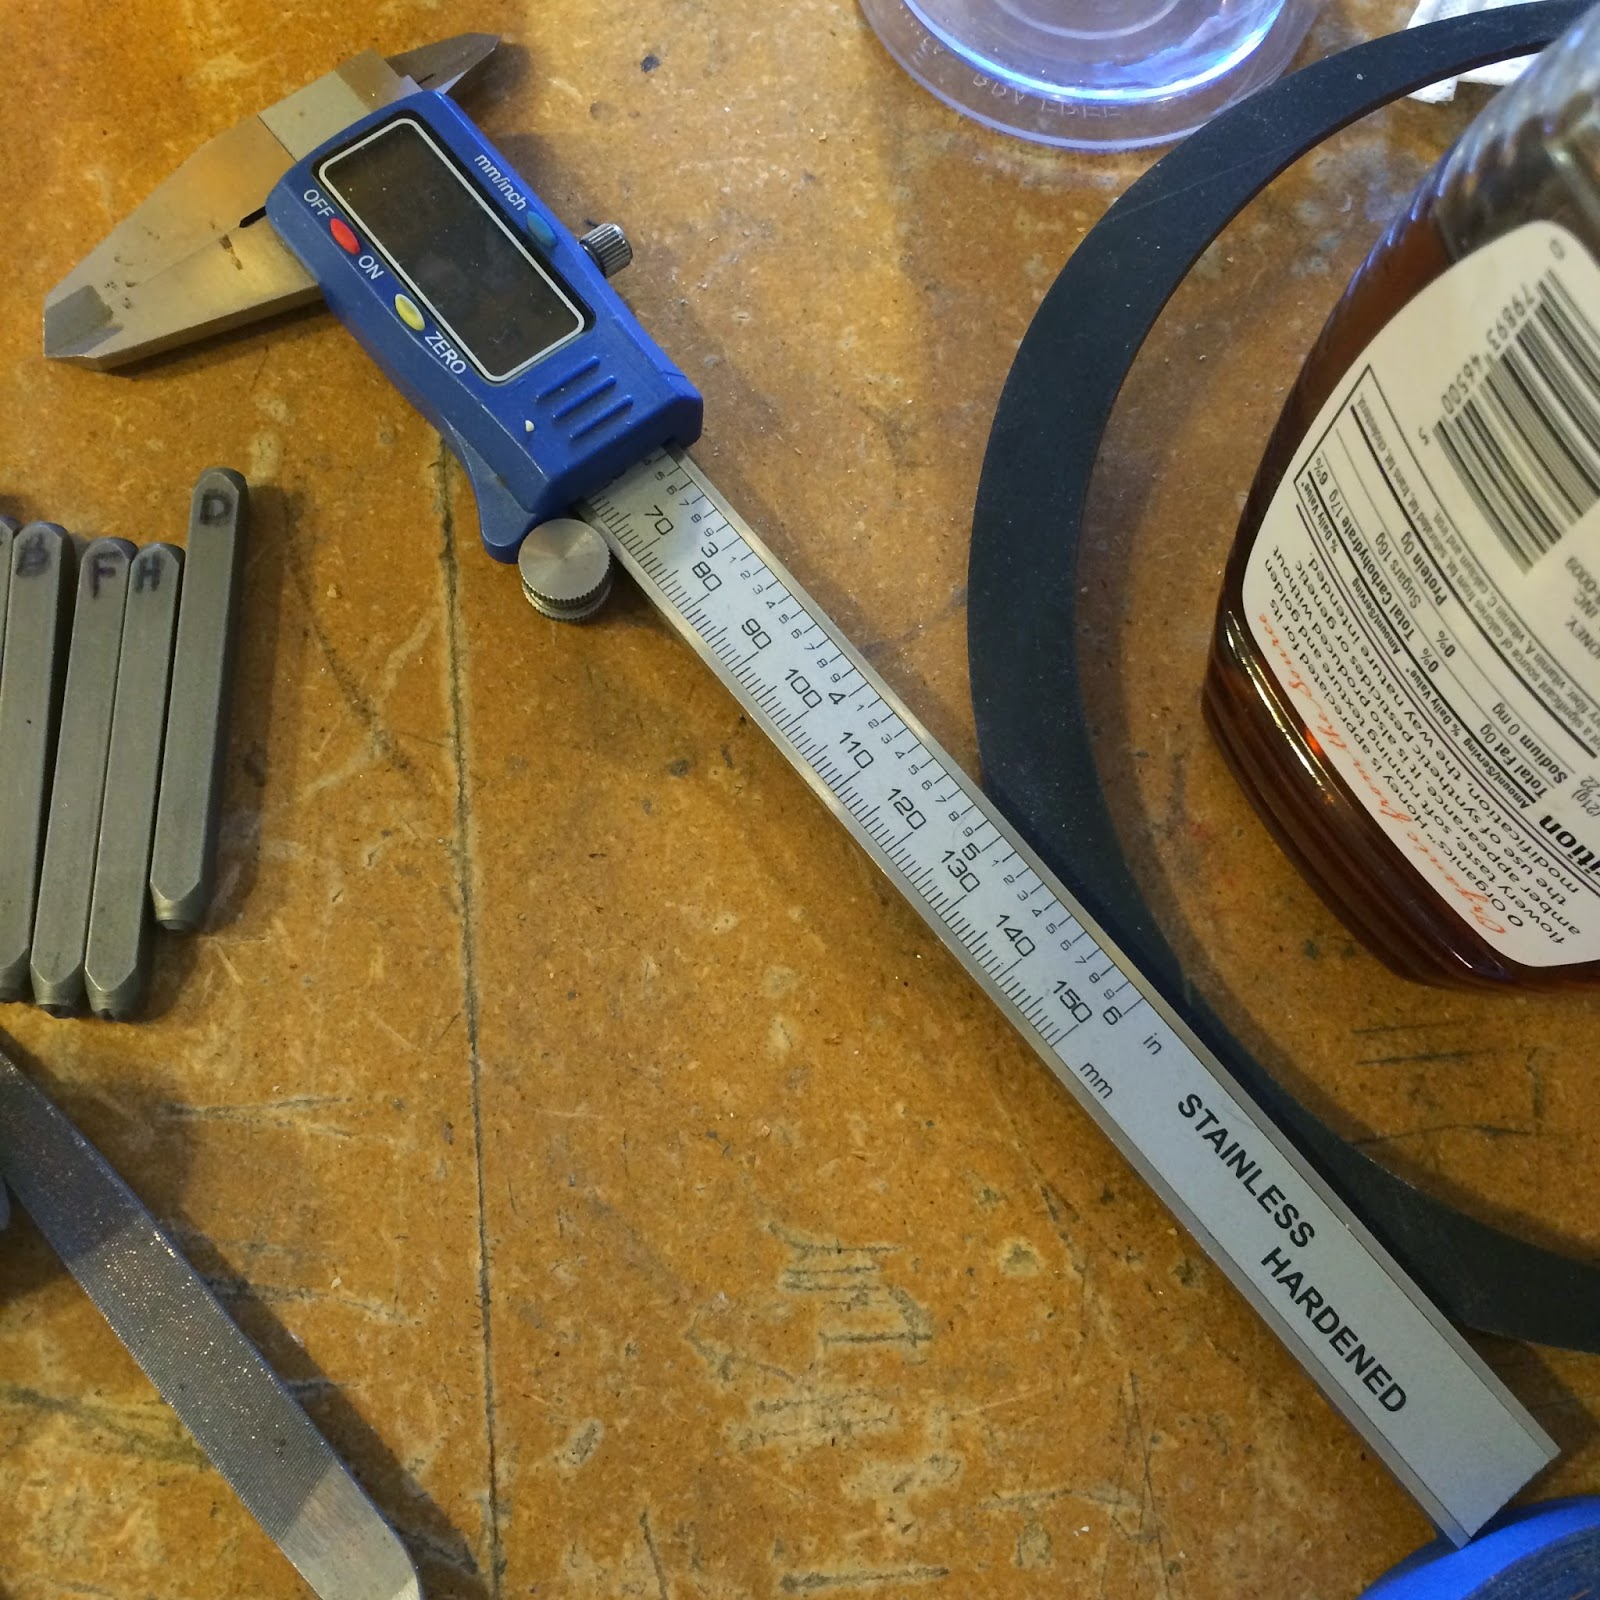 Calipers to measure and center saying